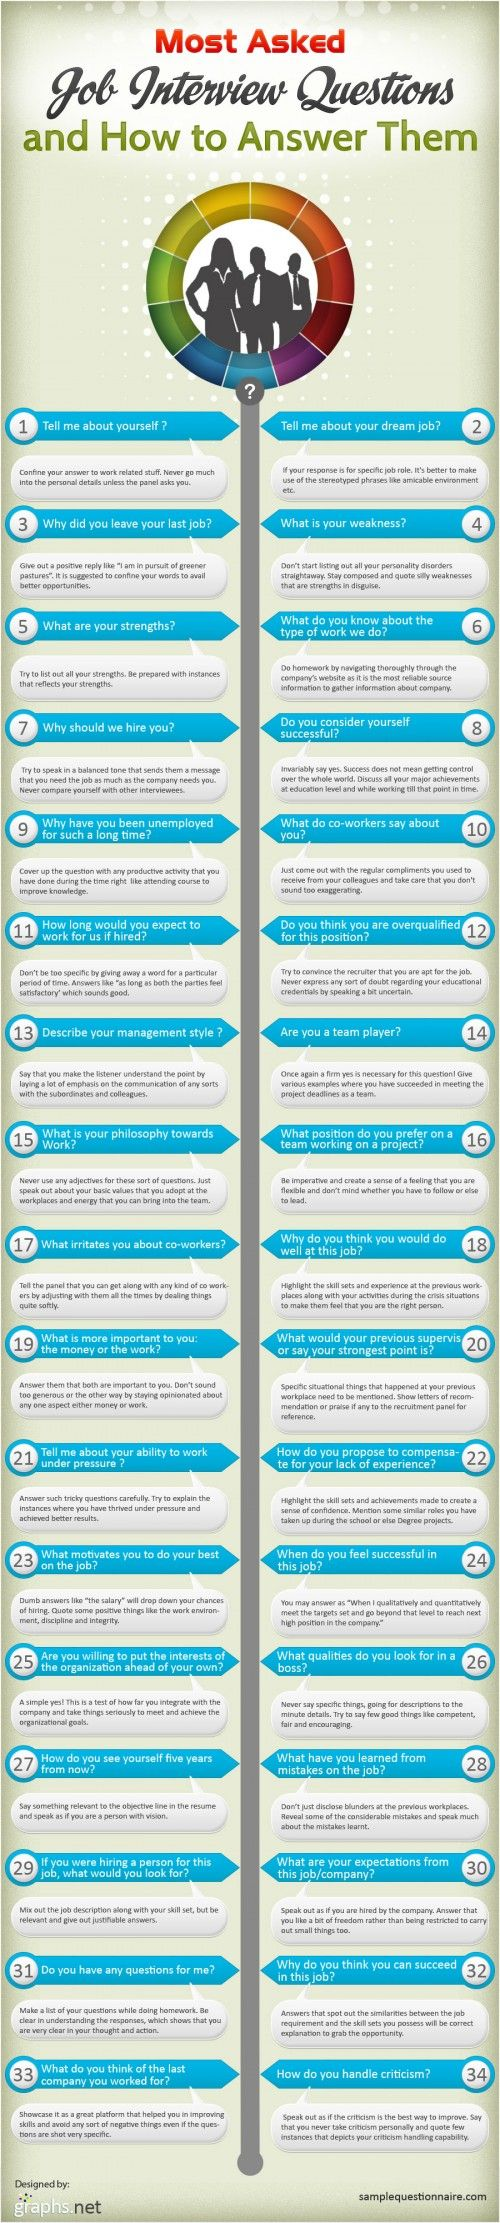 Most Asked Job Interview Questions – Infographic on http://www.bestinfographic.co.uk